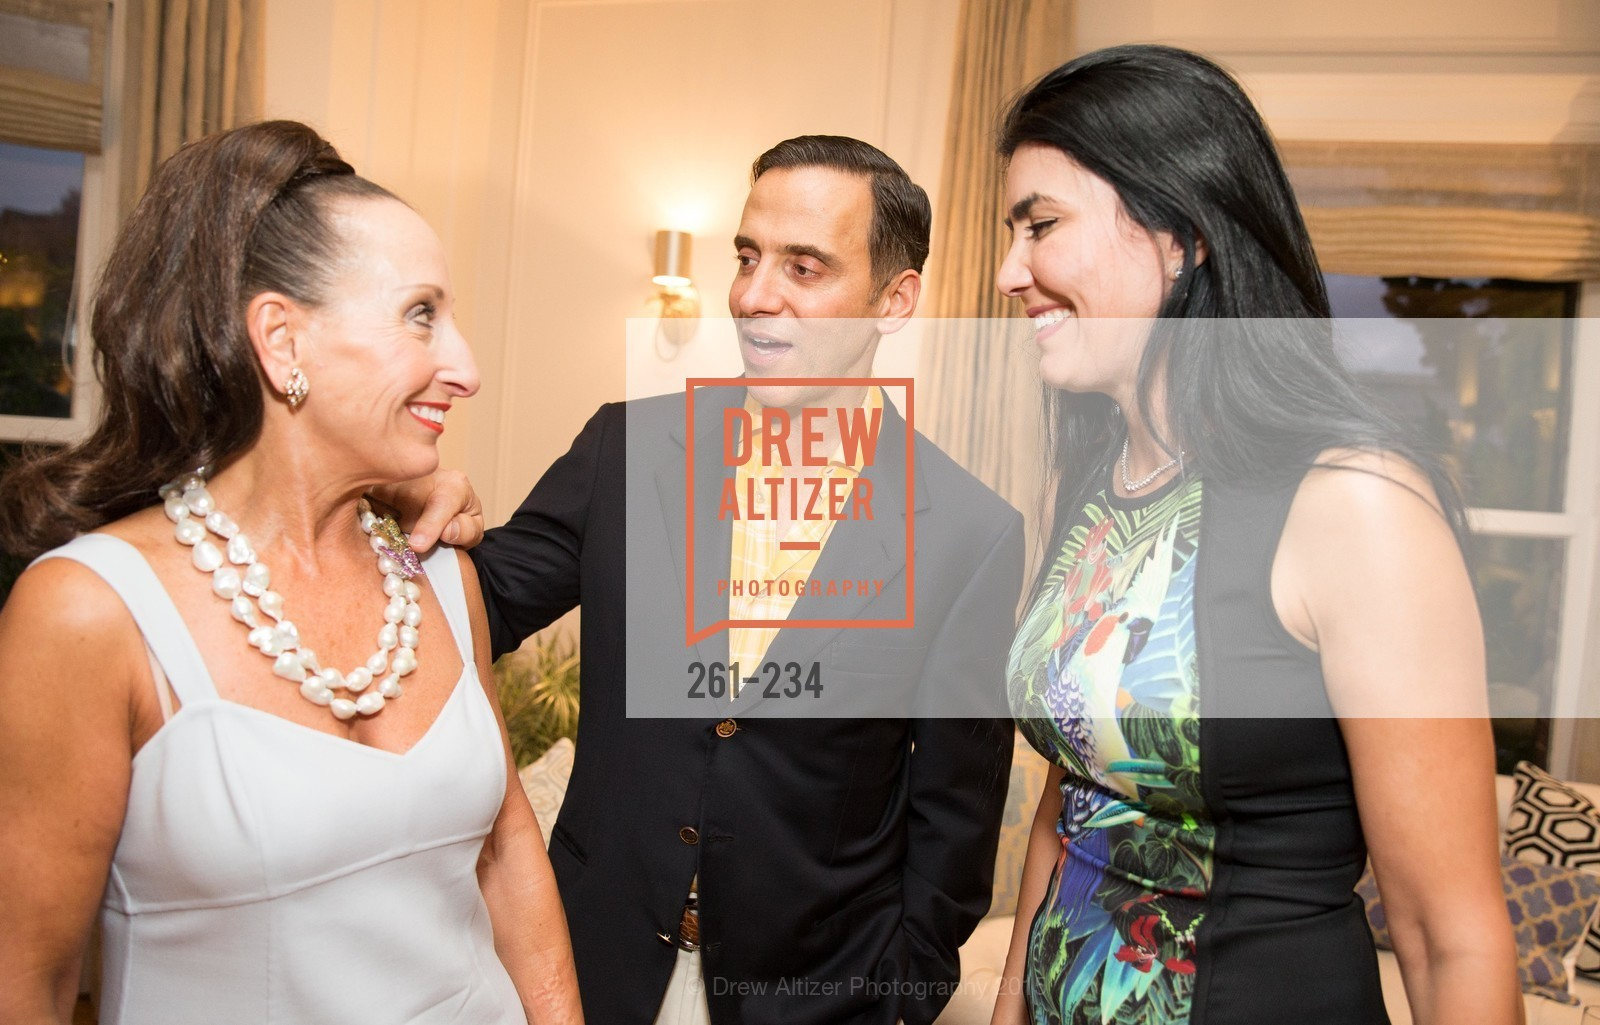 Toni Wolfson, Alan Malouf, Afsaneh Akhtari, San Francisco Opera Ball 2015 Patron Party, Private Residence, August 19th, 2015,Drew Altizer, Drew Altizer Photography, full-service agency, private events, San Francisco photographer, photographer california